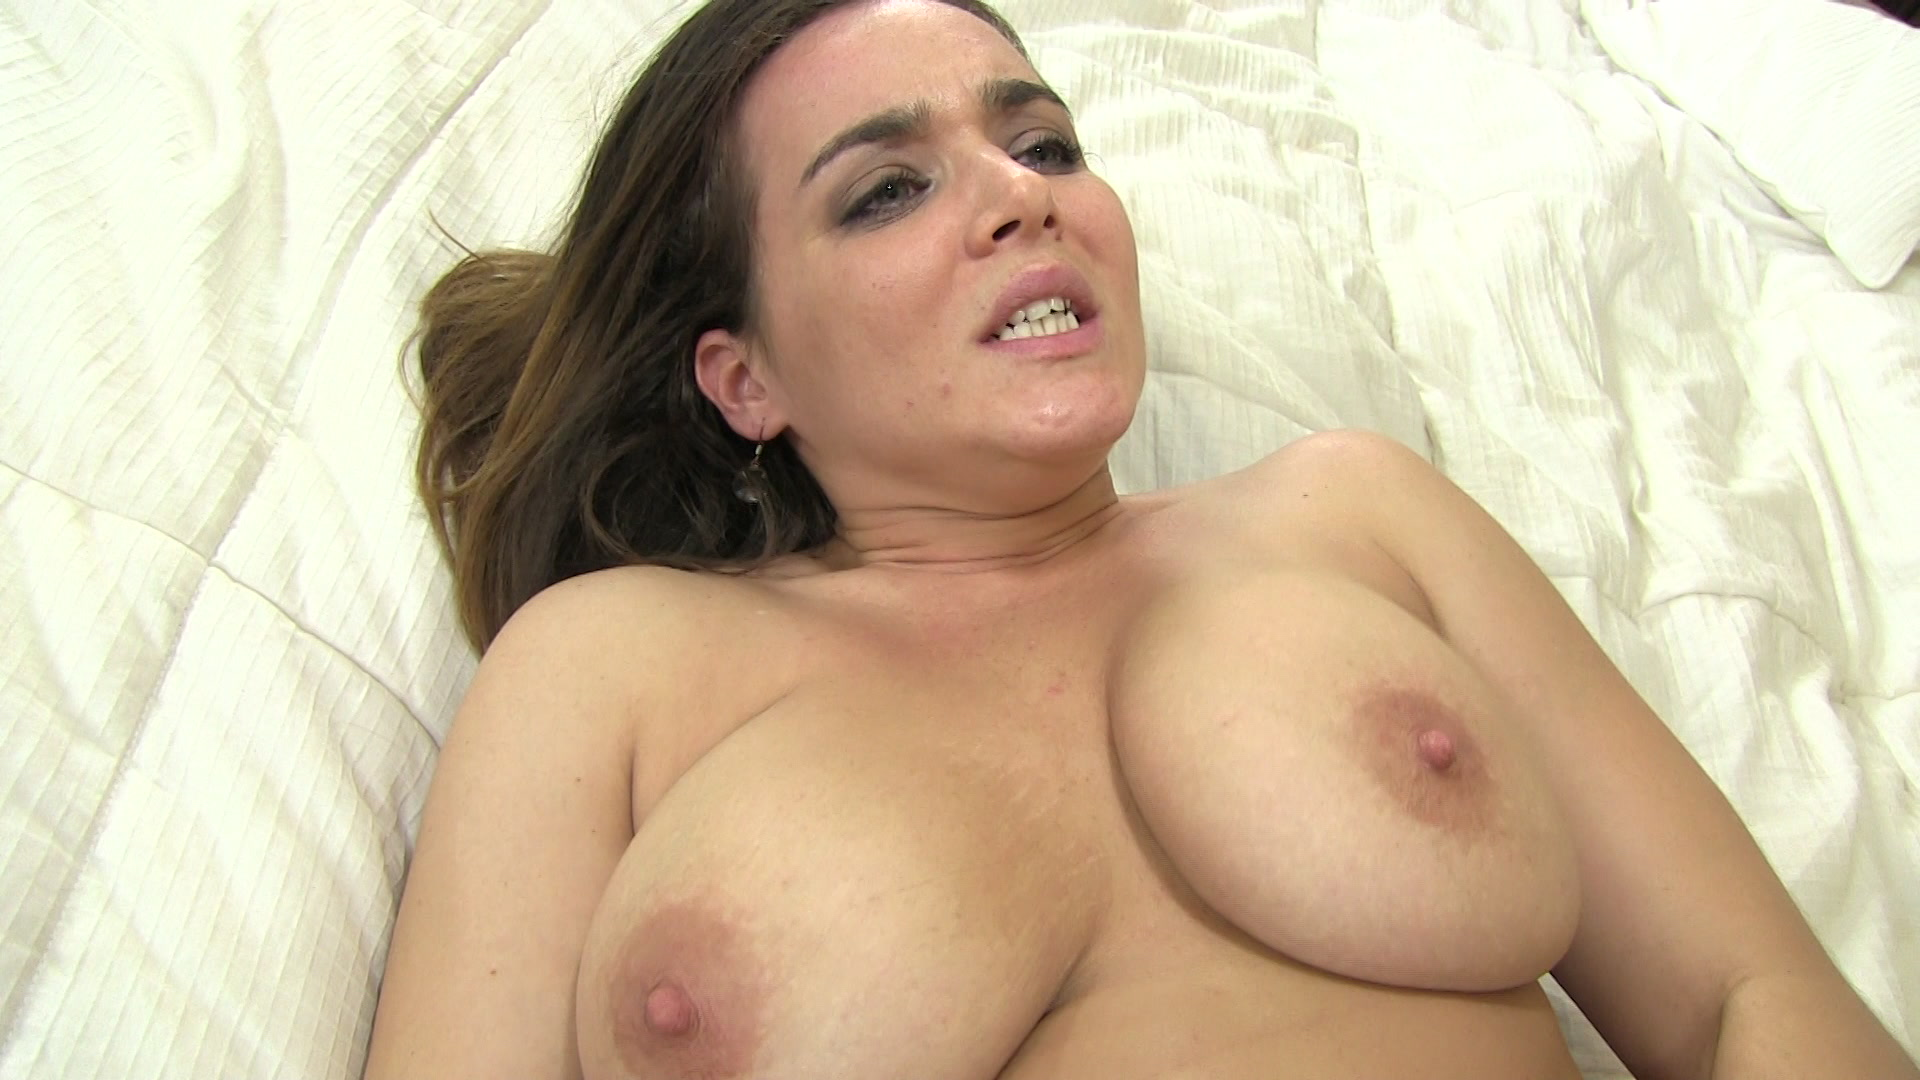 Her brothers hard cock